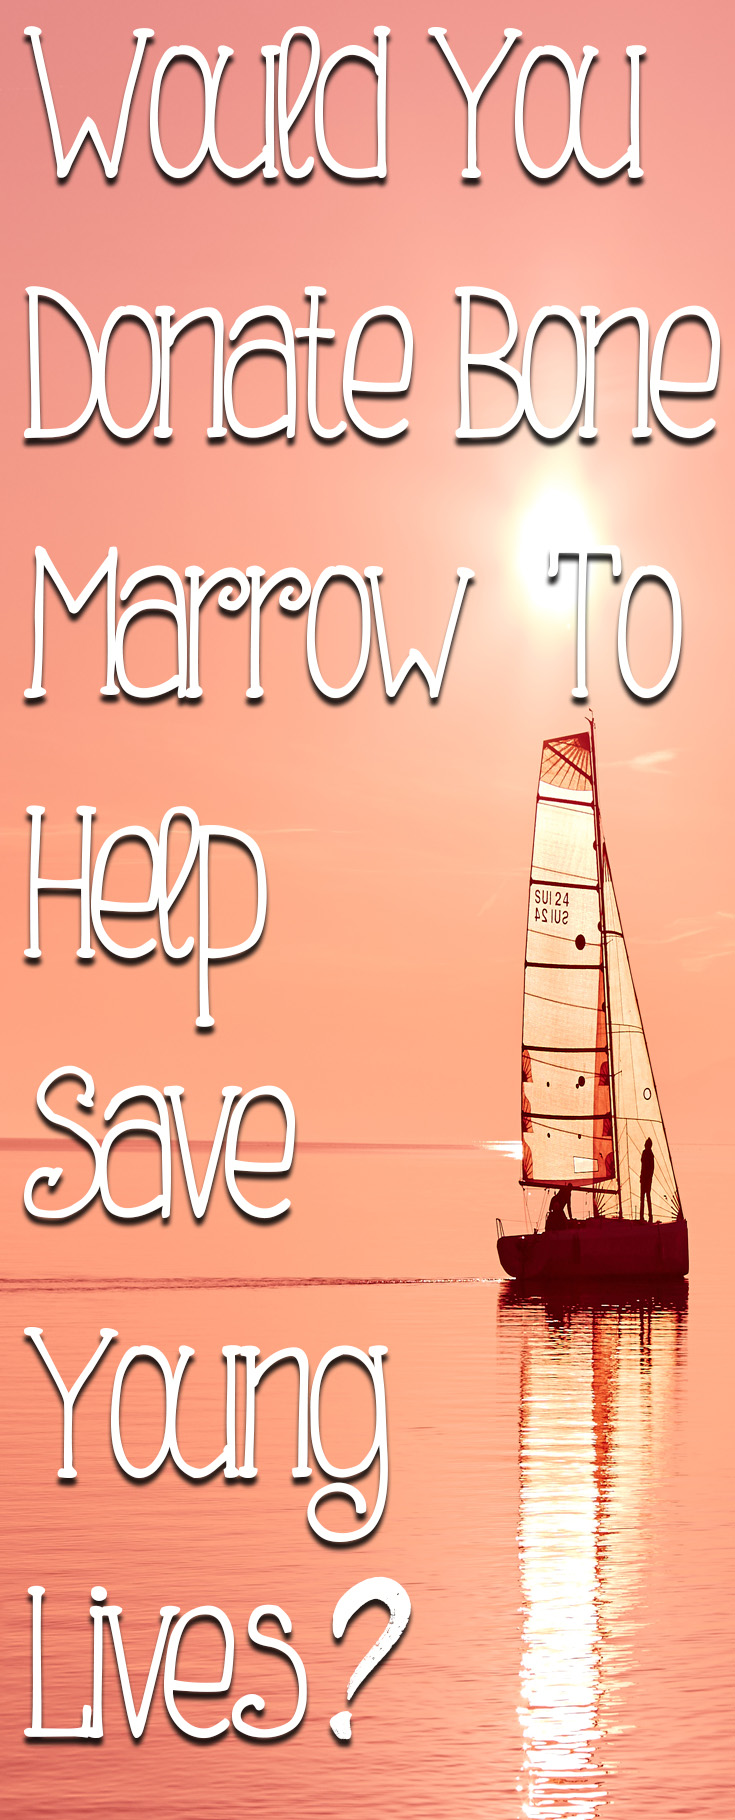 Donating Bone Marrow Is Easy and Important: Here's Why ...